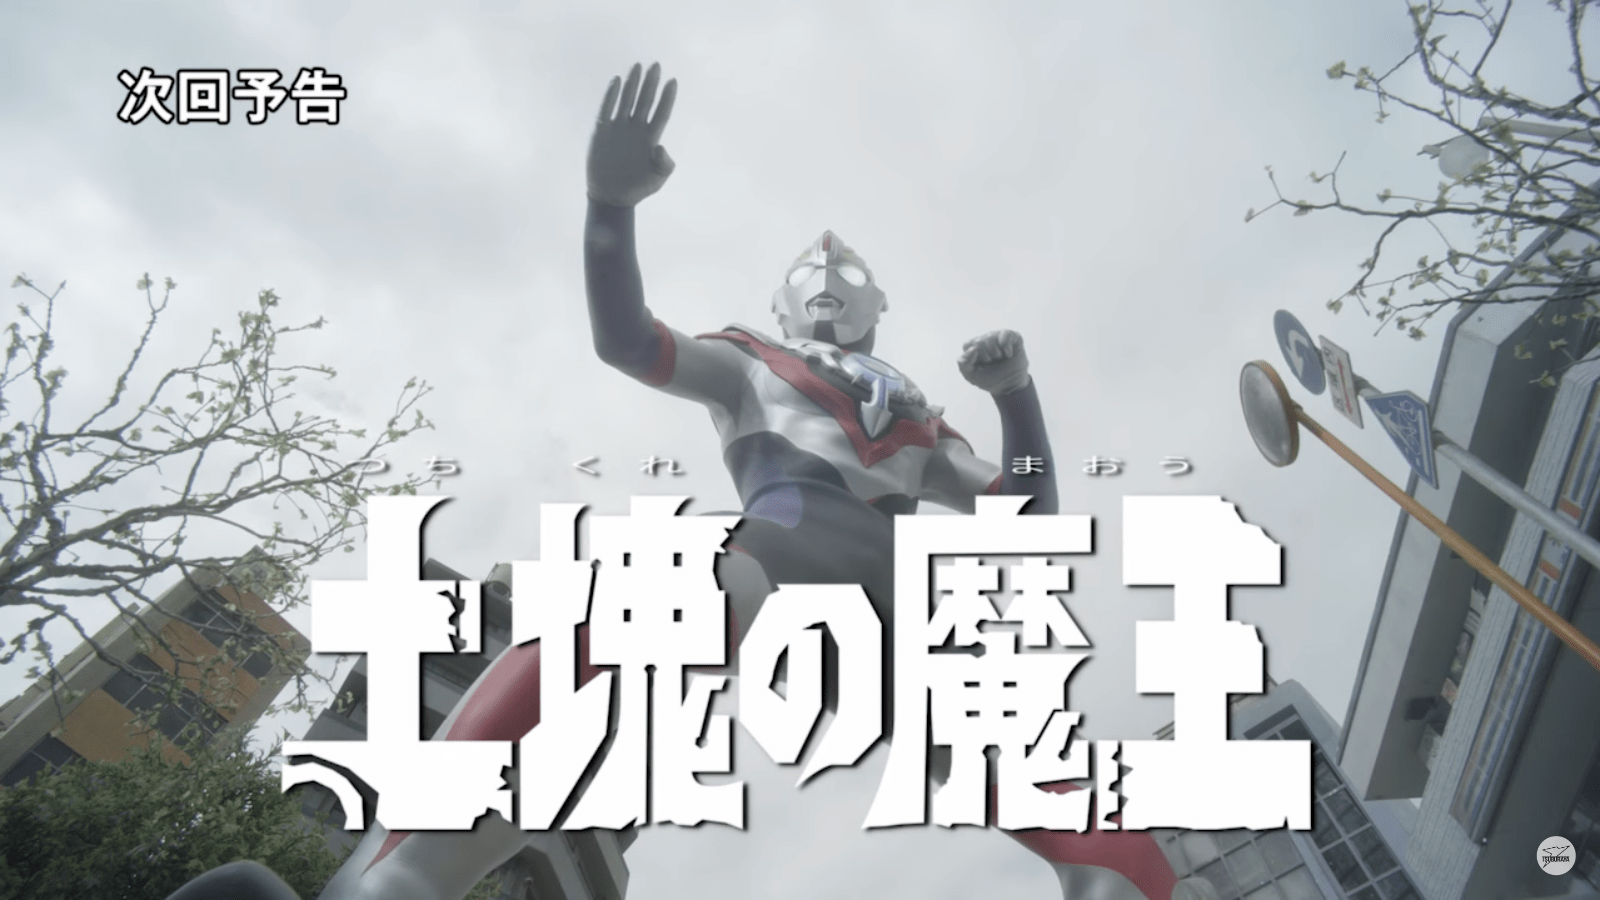 Next Time on Ultraman Orb: Episode 2